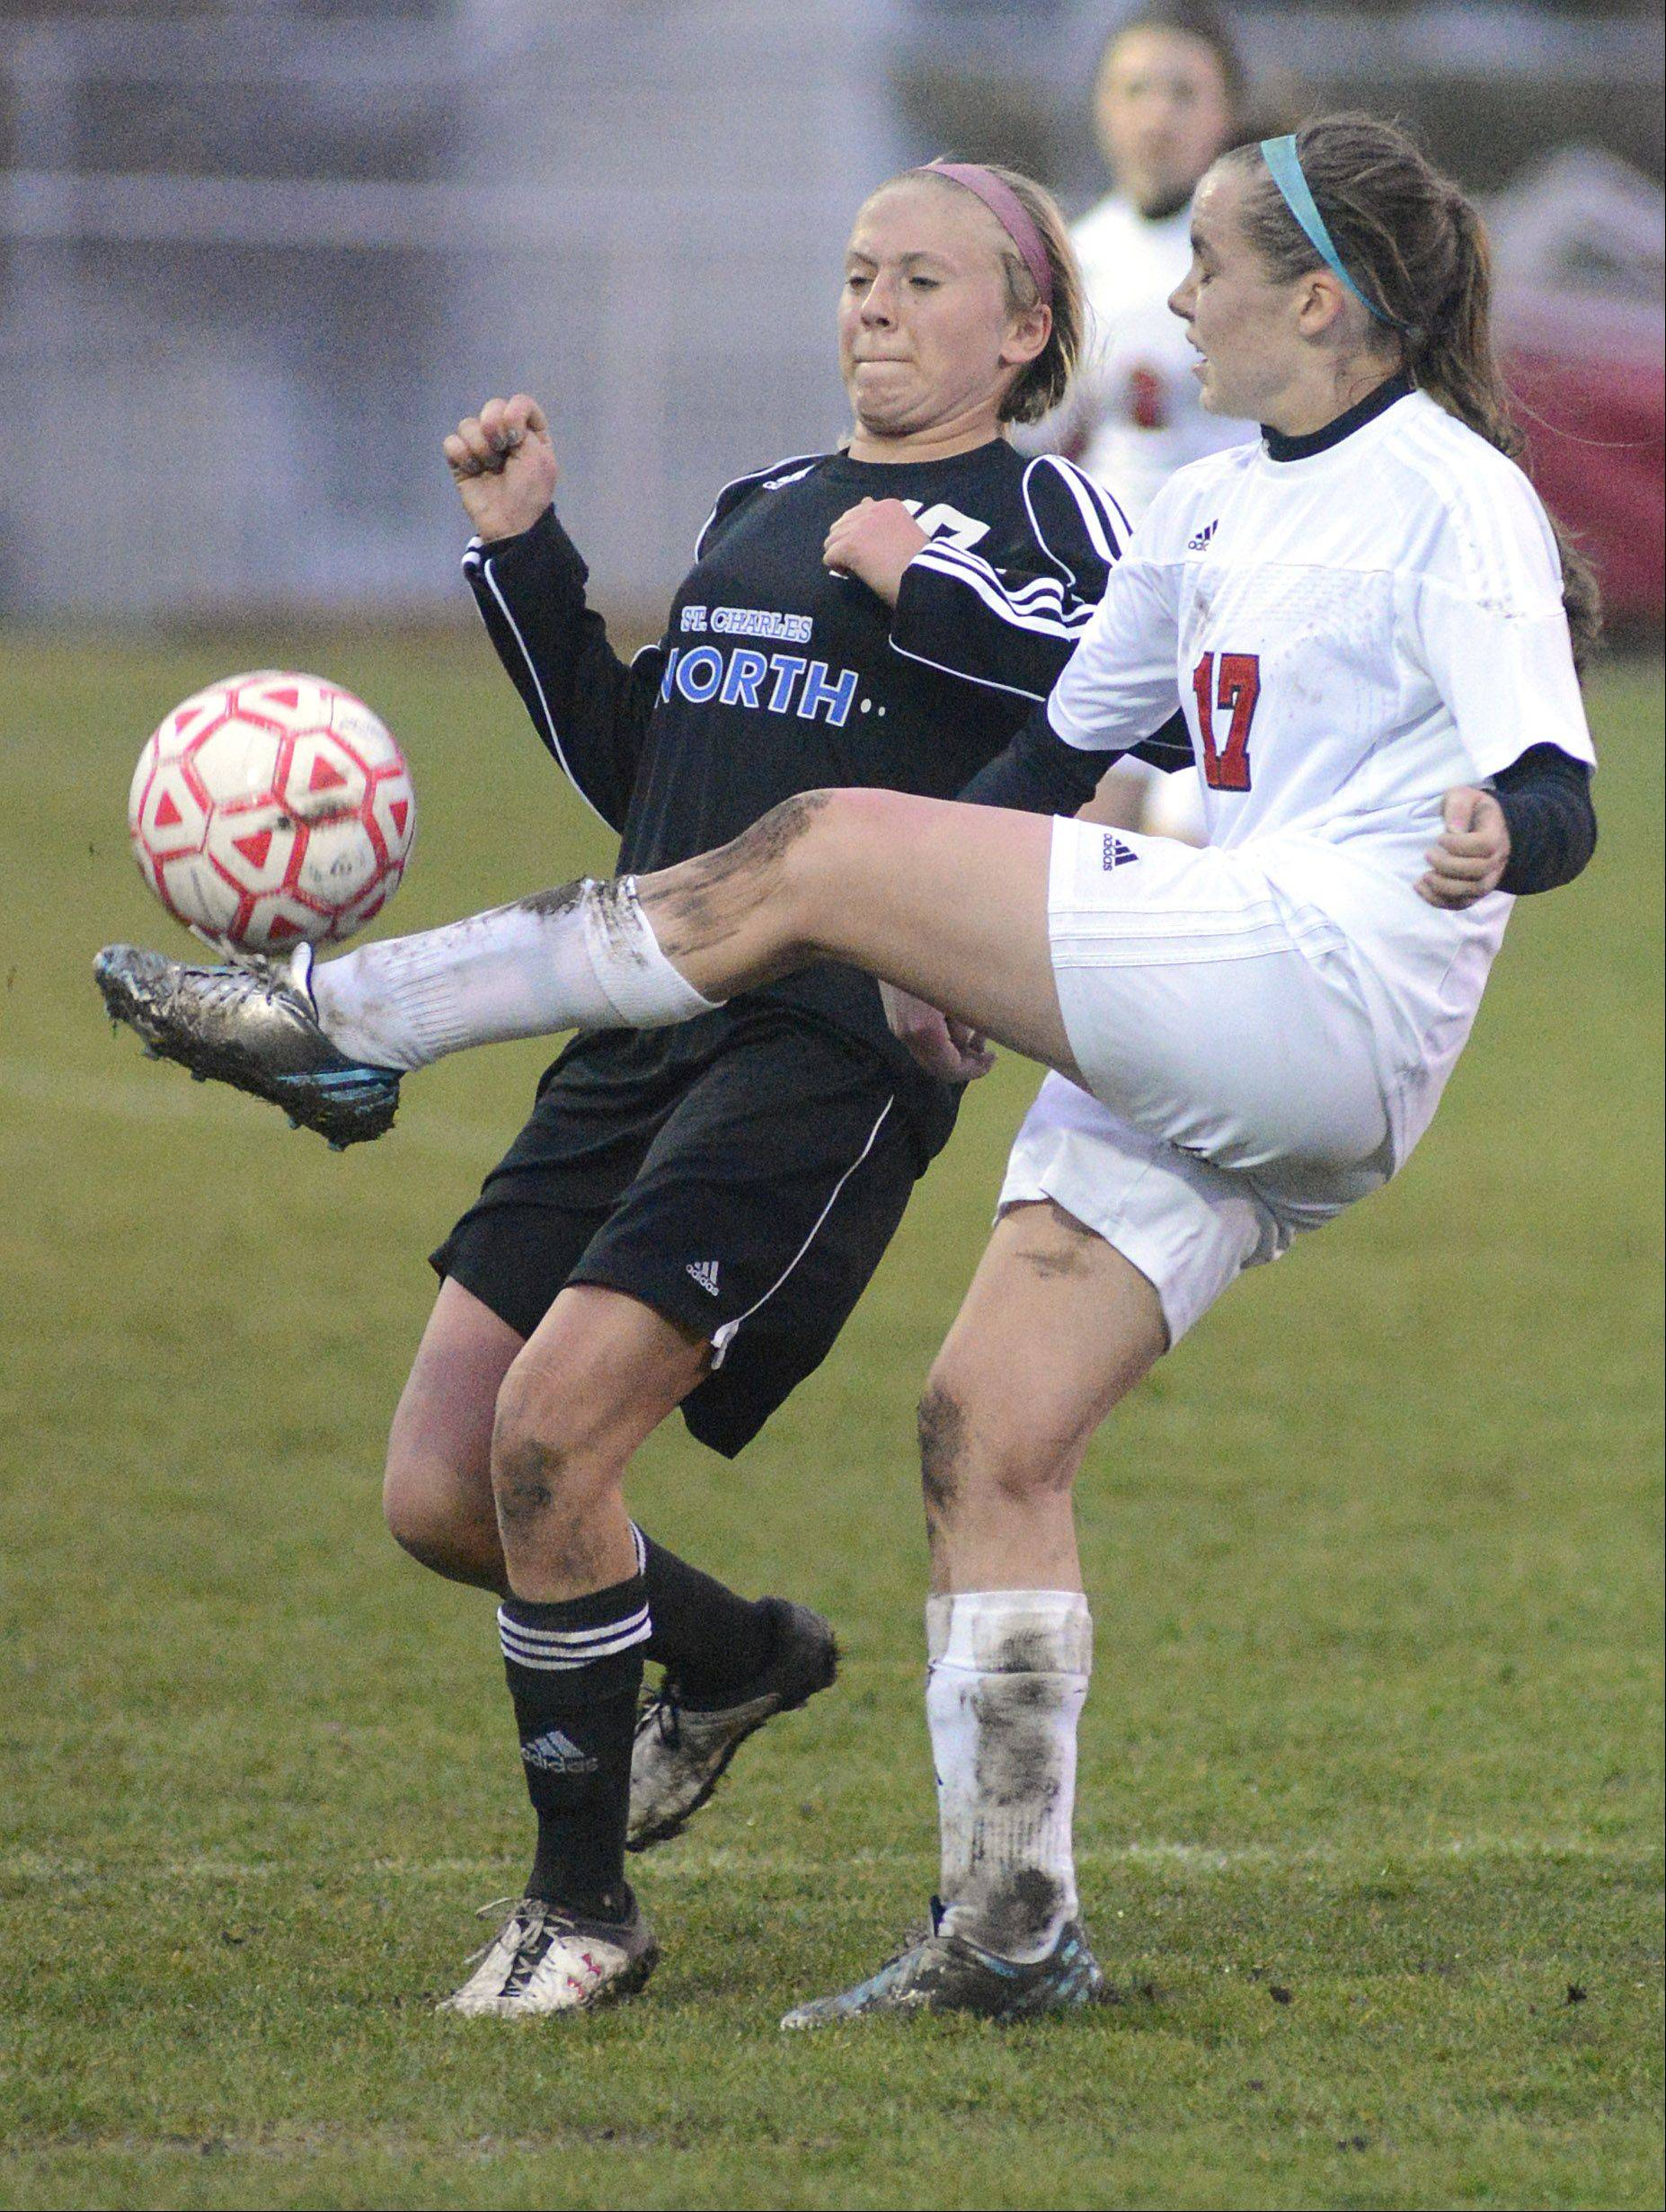 St. Charles North's Kelly Manski and Batavia's Alison Grimm fight for possession for the ball in the first half on Thursday, April 11.